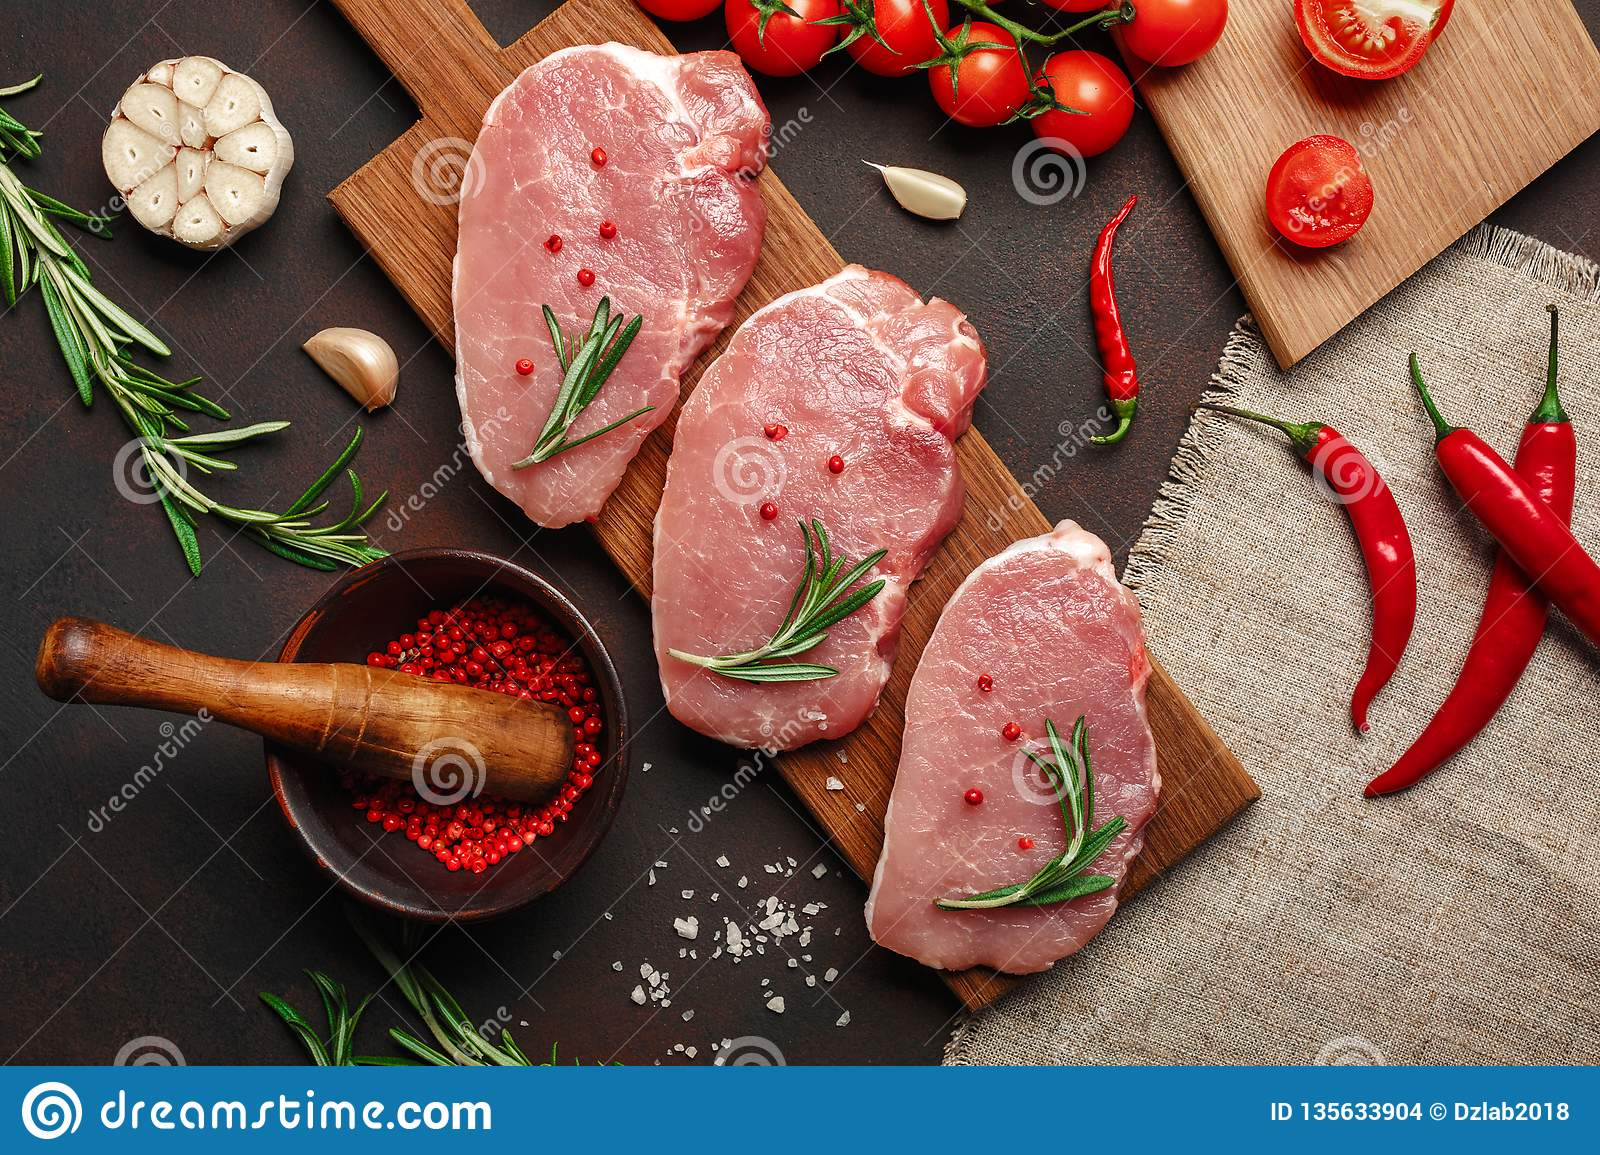 Pieces of raw pork steak on cutting board with cherry tomatoes, rosemary, garlic, pepper, salt and spice mortar on rusty brown